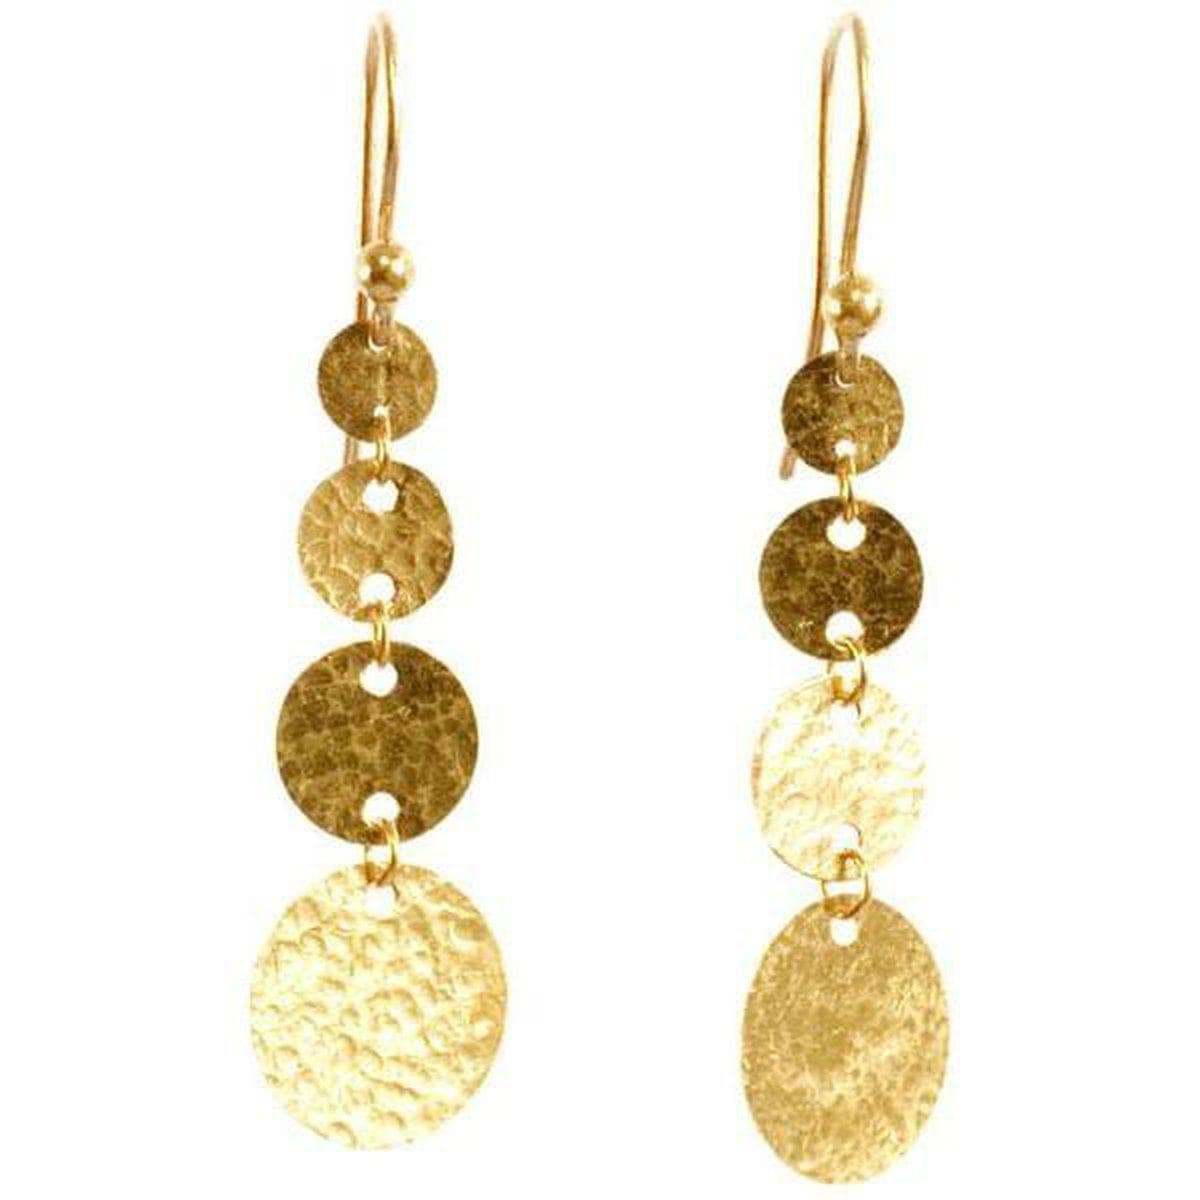 Lush 24K Gold Earrings - FE-4GF-GR-GH-GURHAN-Renee Taylor Gallery